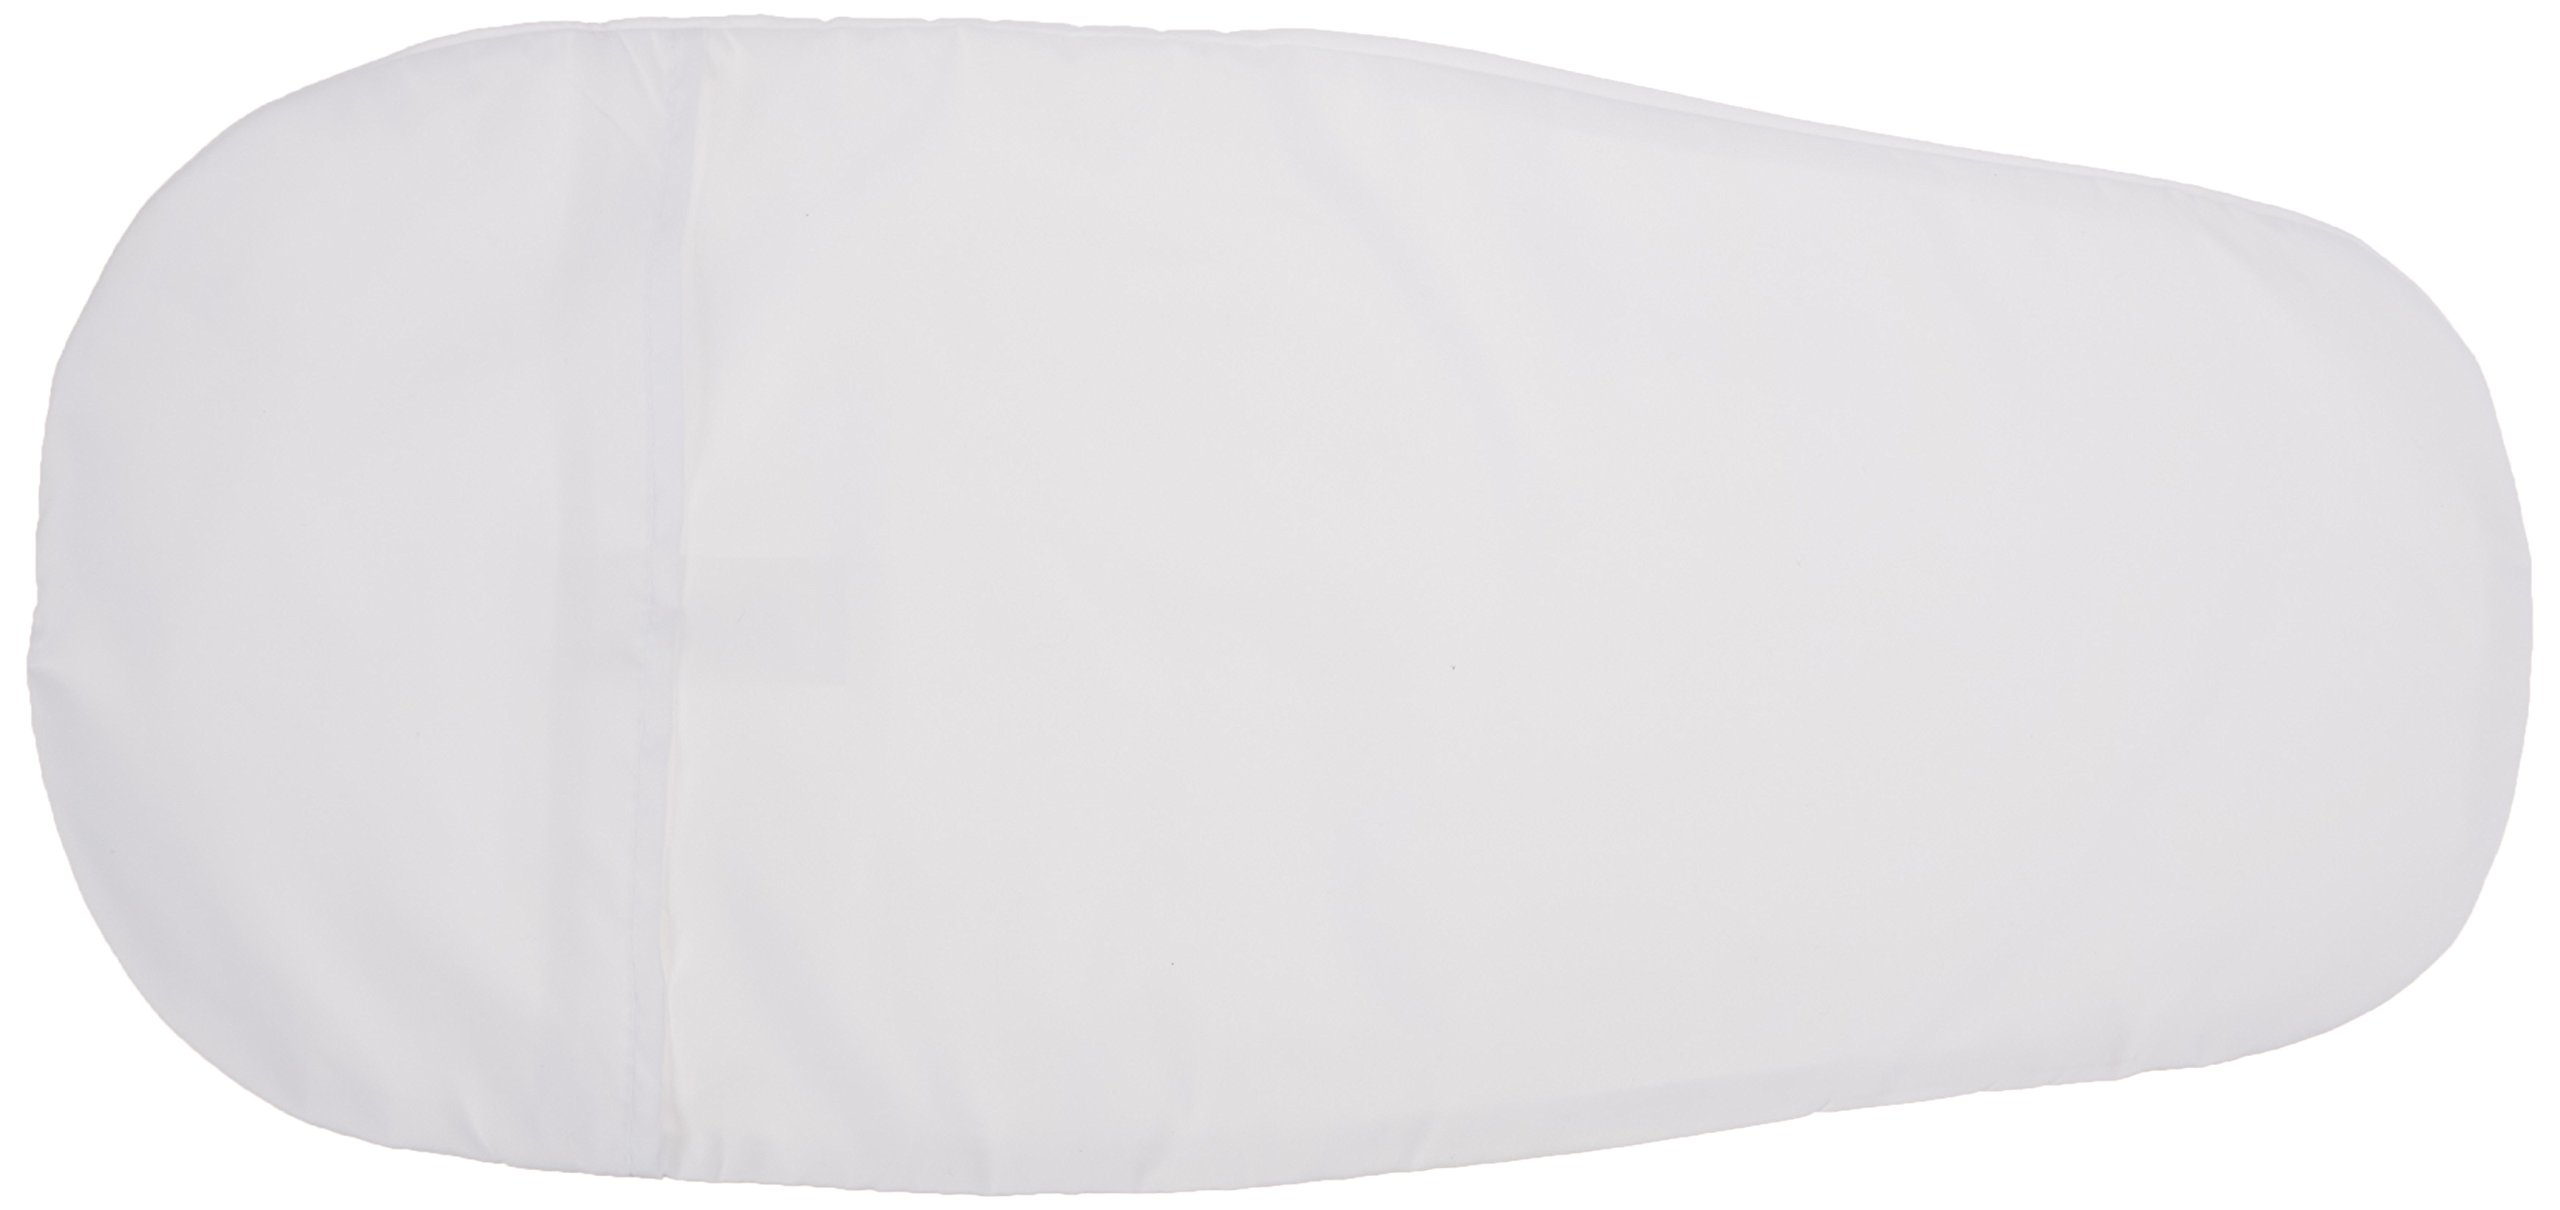 Baby Delight Snuggle Nest Surround Sheets, White, X-Large